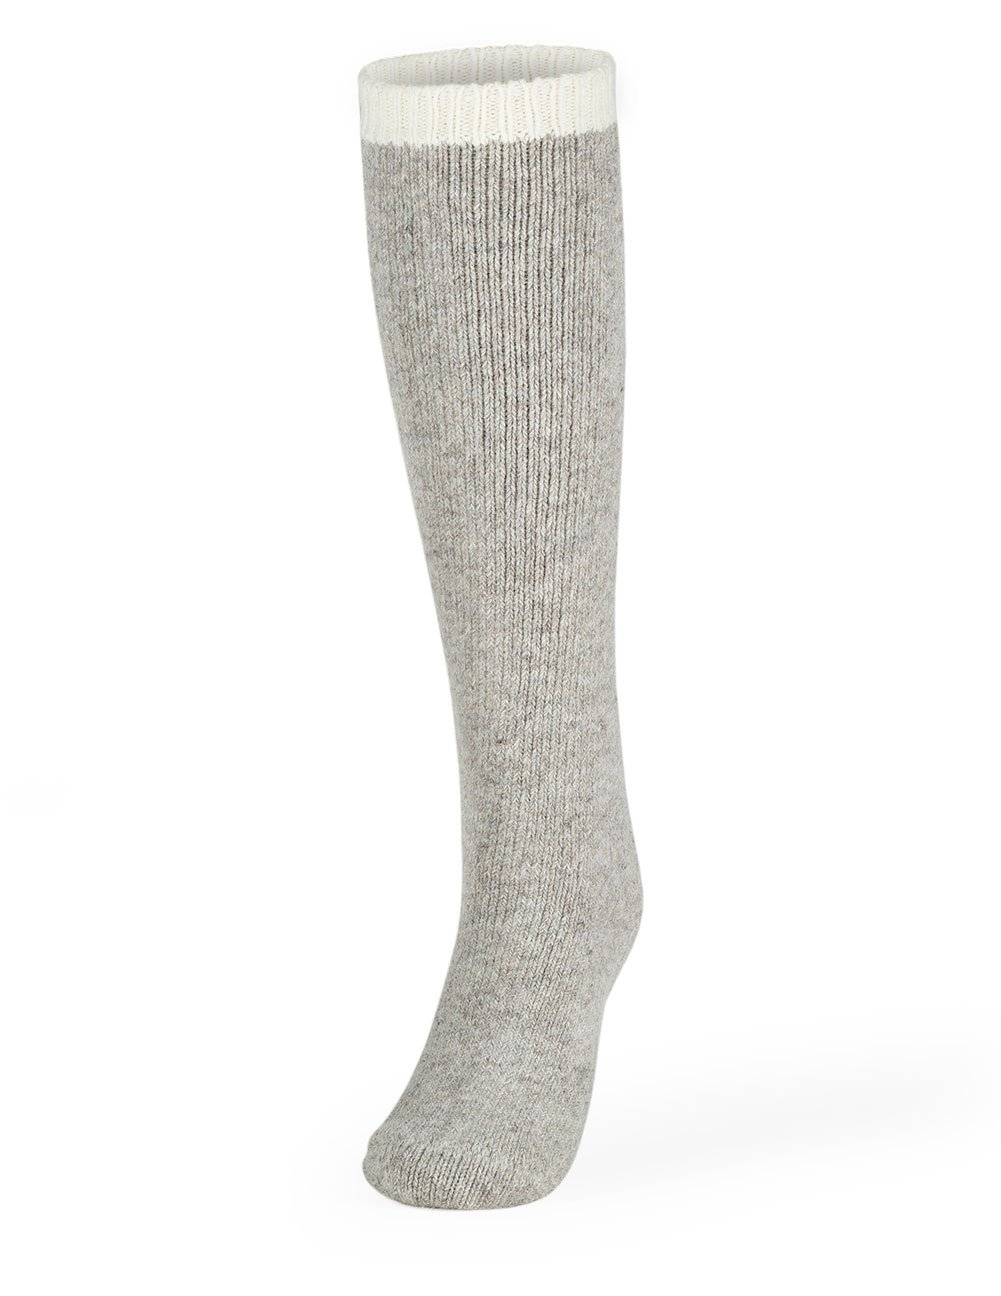 Women's Thermal Wool Socks Style 1145OTC: Gray Knee High, Size 9-11 Cleverbrand